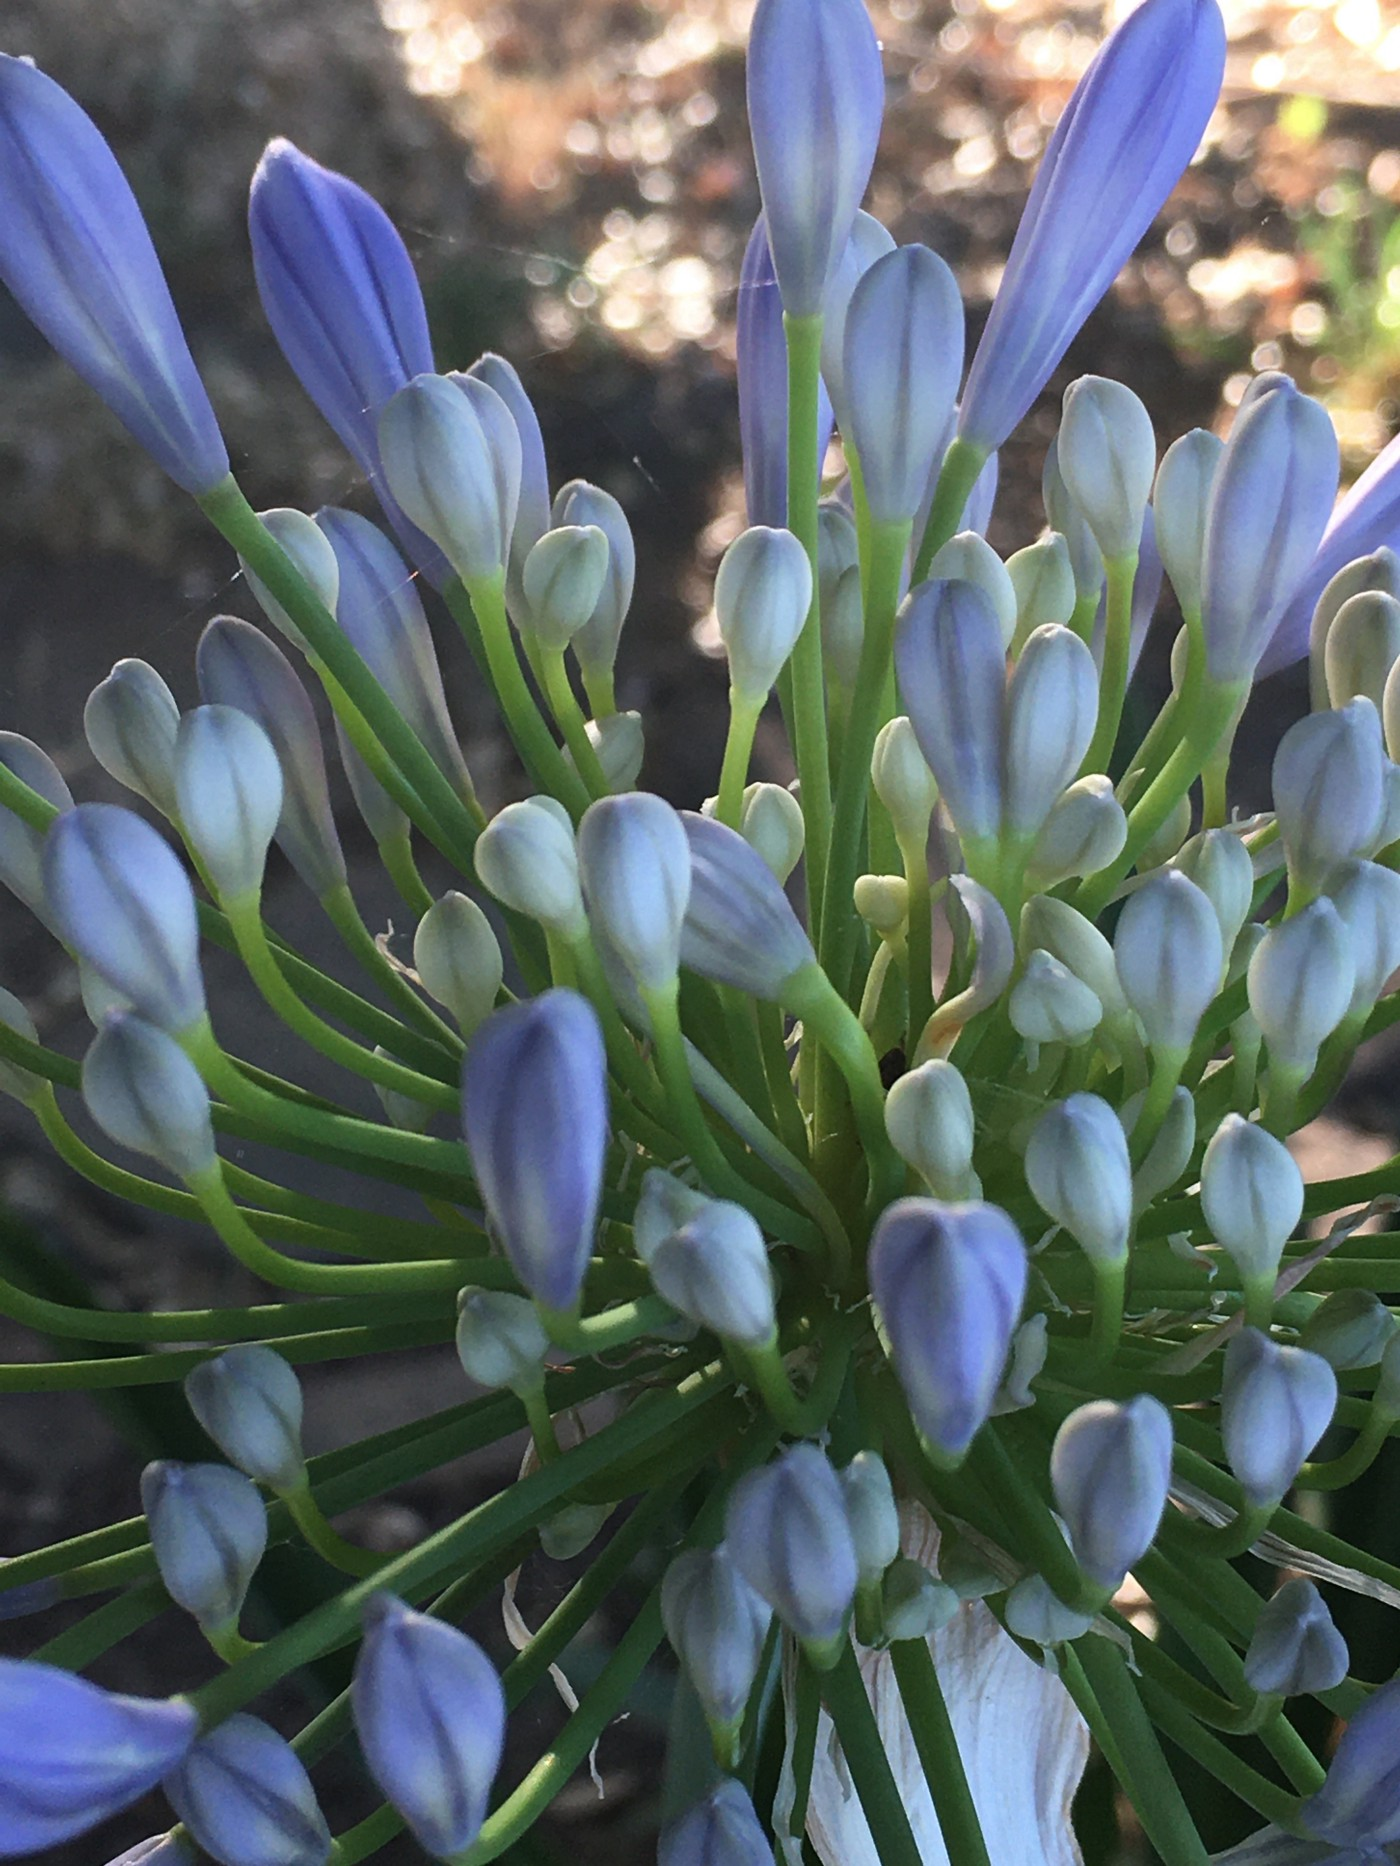 Close-up of multiple buds of a lavender, large Agapanthus flower